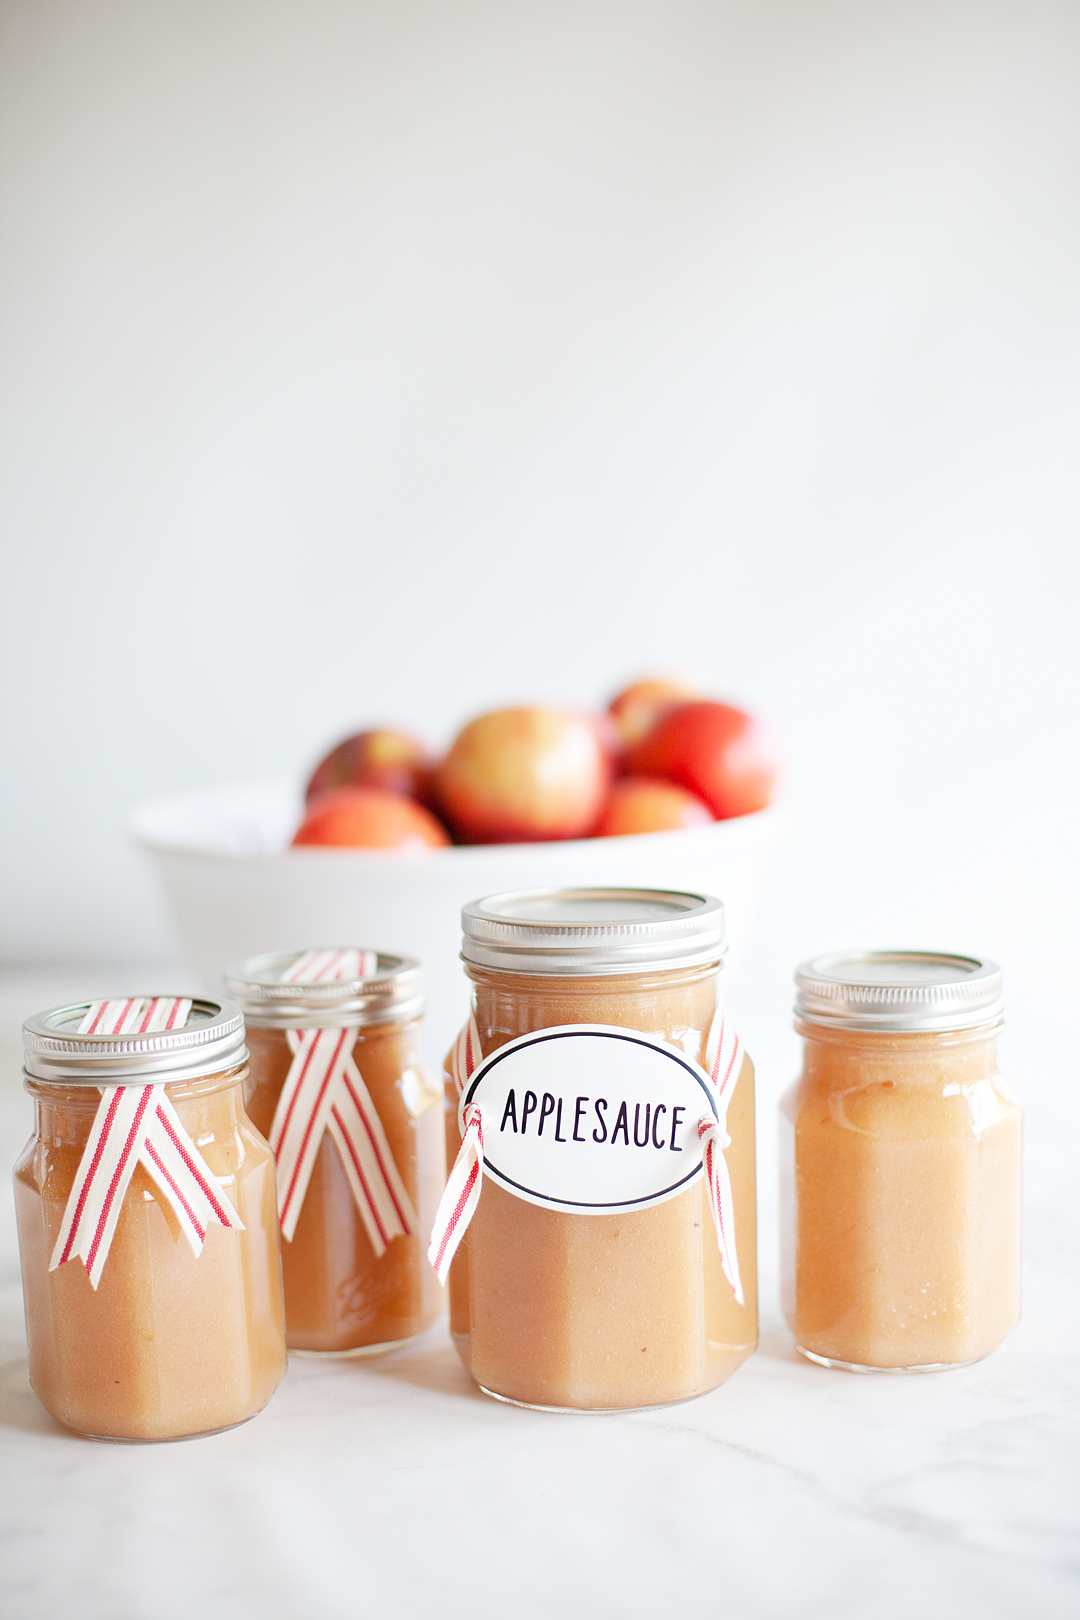 Not to knock commercially prepared applesauce, but when you have the opportunity to enjoy homemade applesauce, you will know the difference. It's sweet and tangy with the perfect texture. Not to mention the fact that it harmonizes well with many different notes on your palette AND, it's super easy to make! #applesauce #applesaucerecipe #homemadeapplesauce